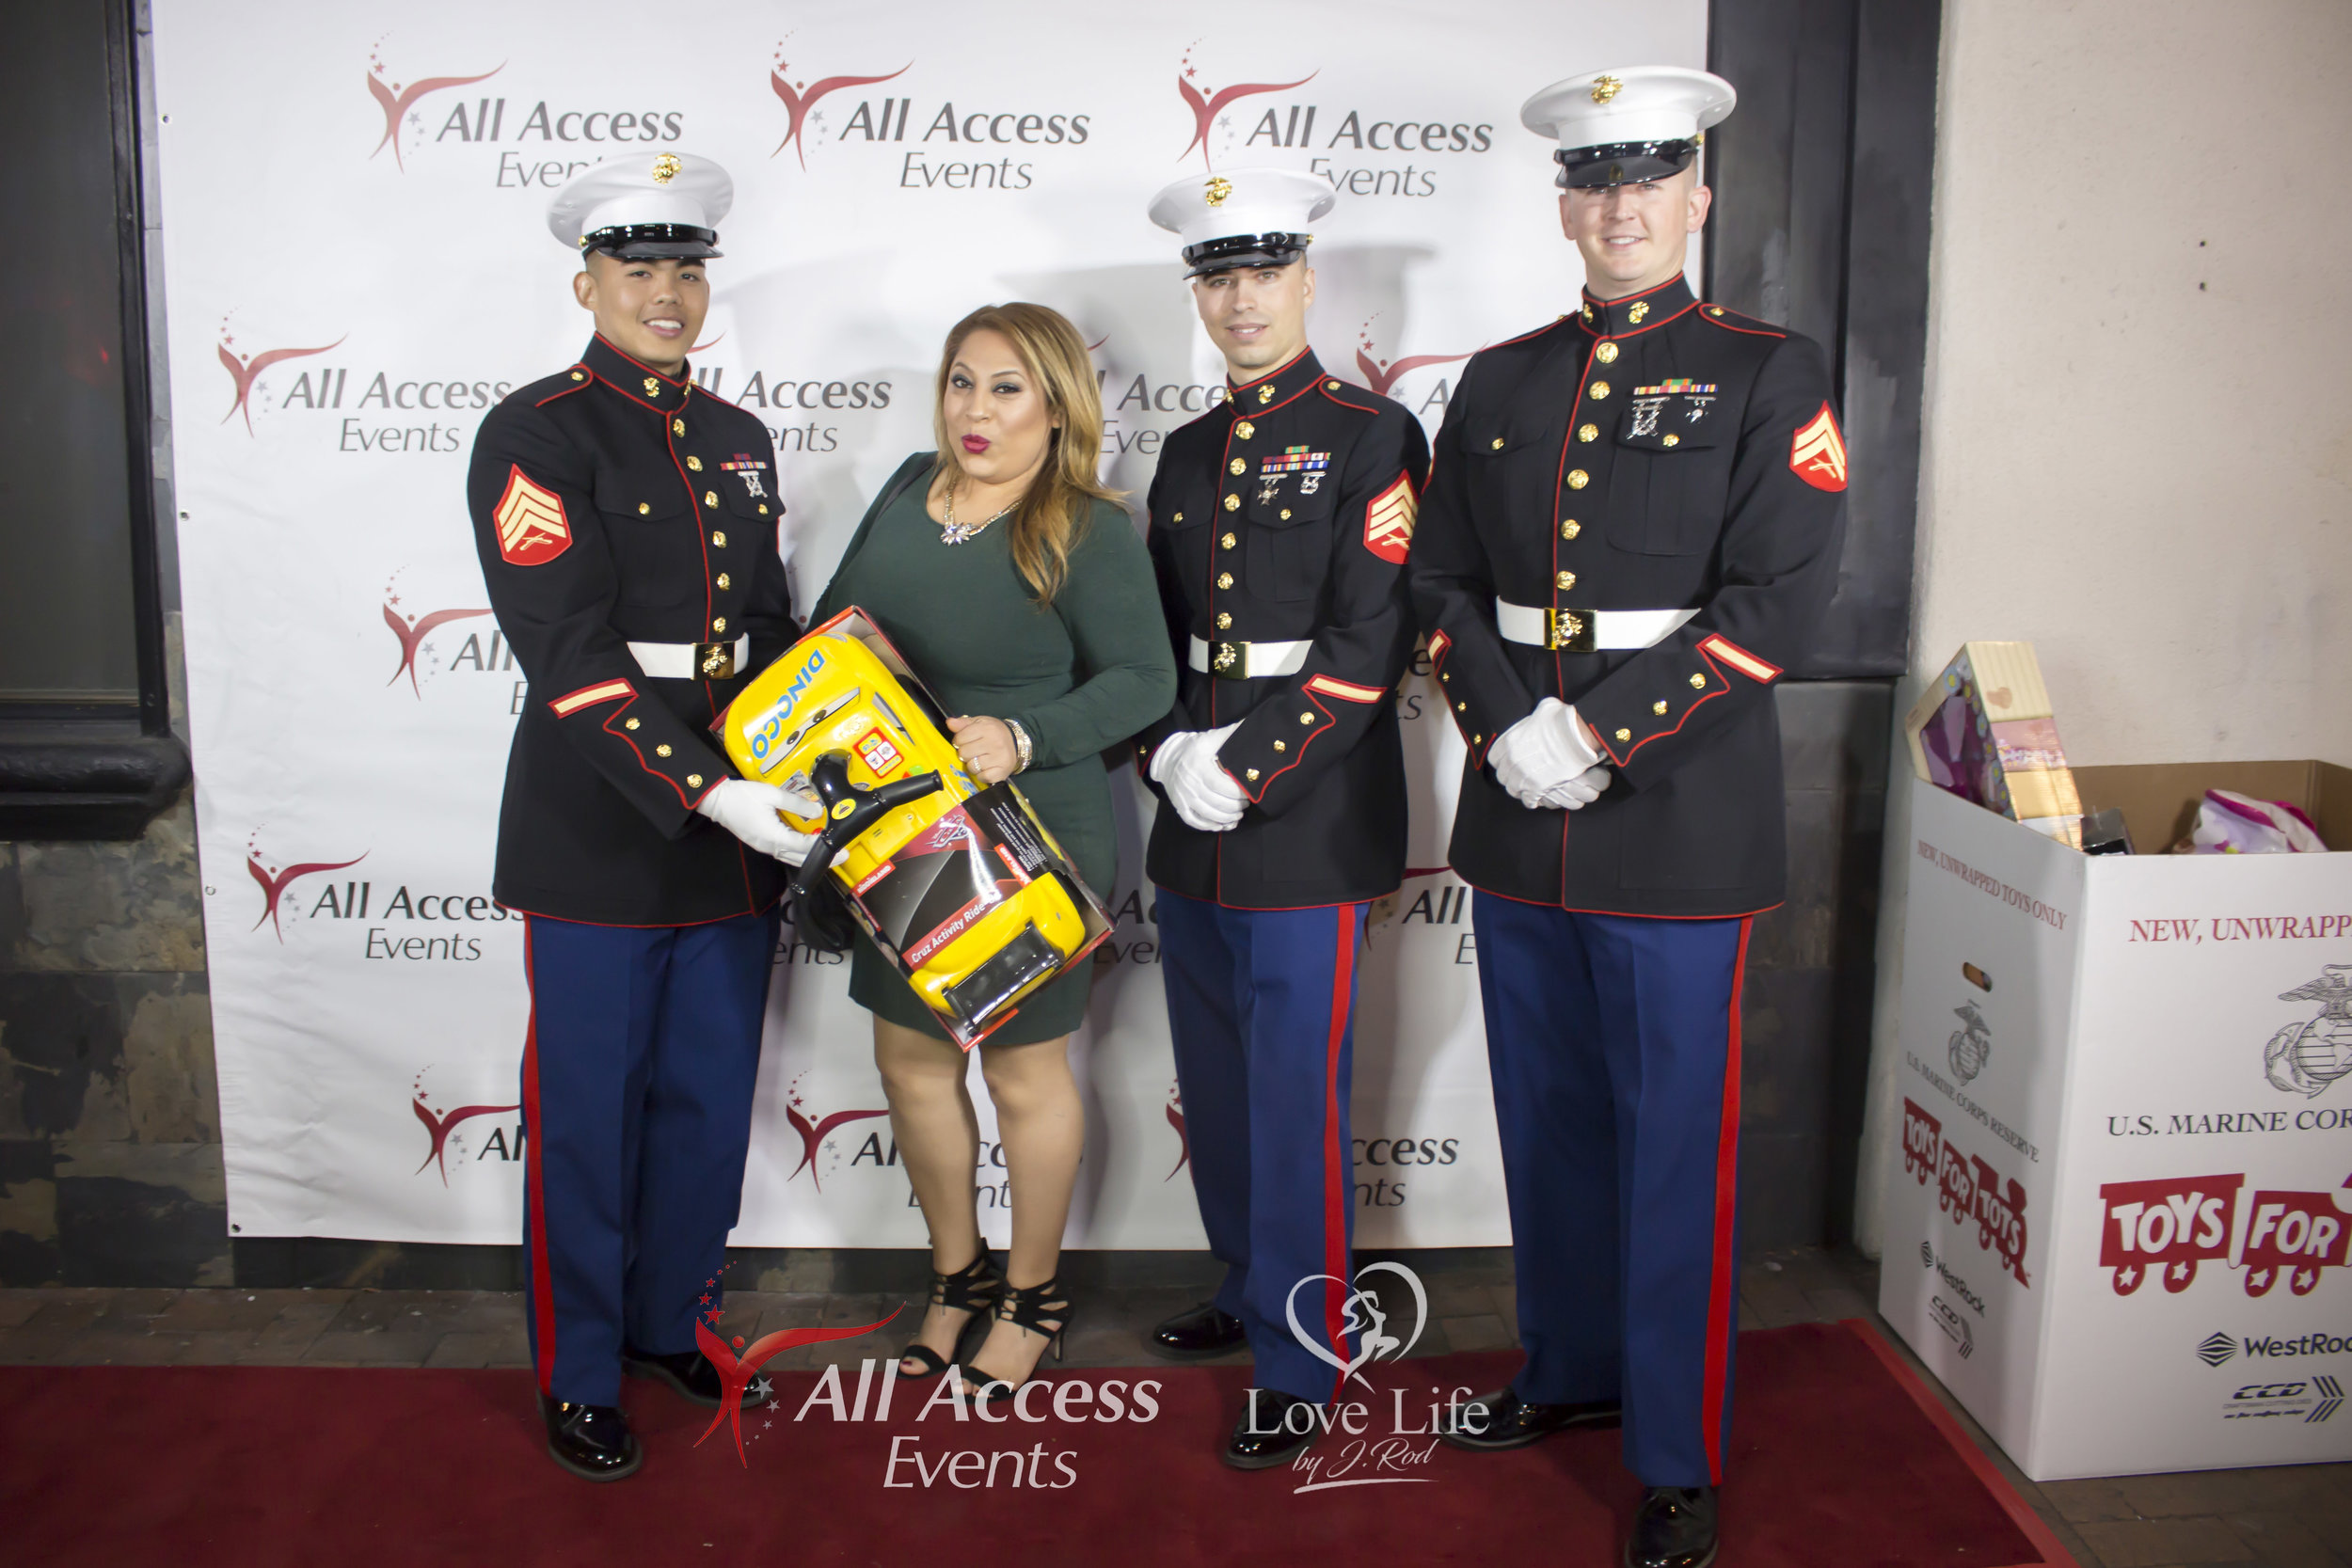 All Access Events Toy Drive - 12-13-17_215.jpg